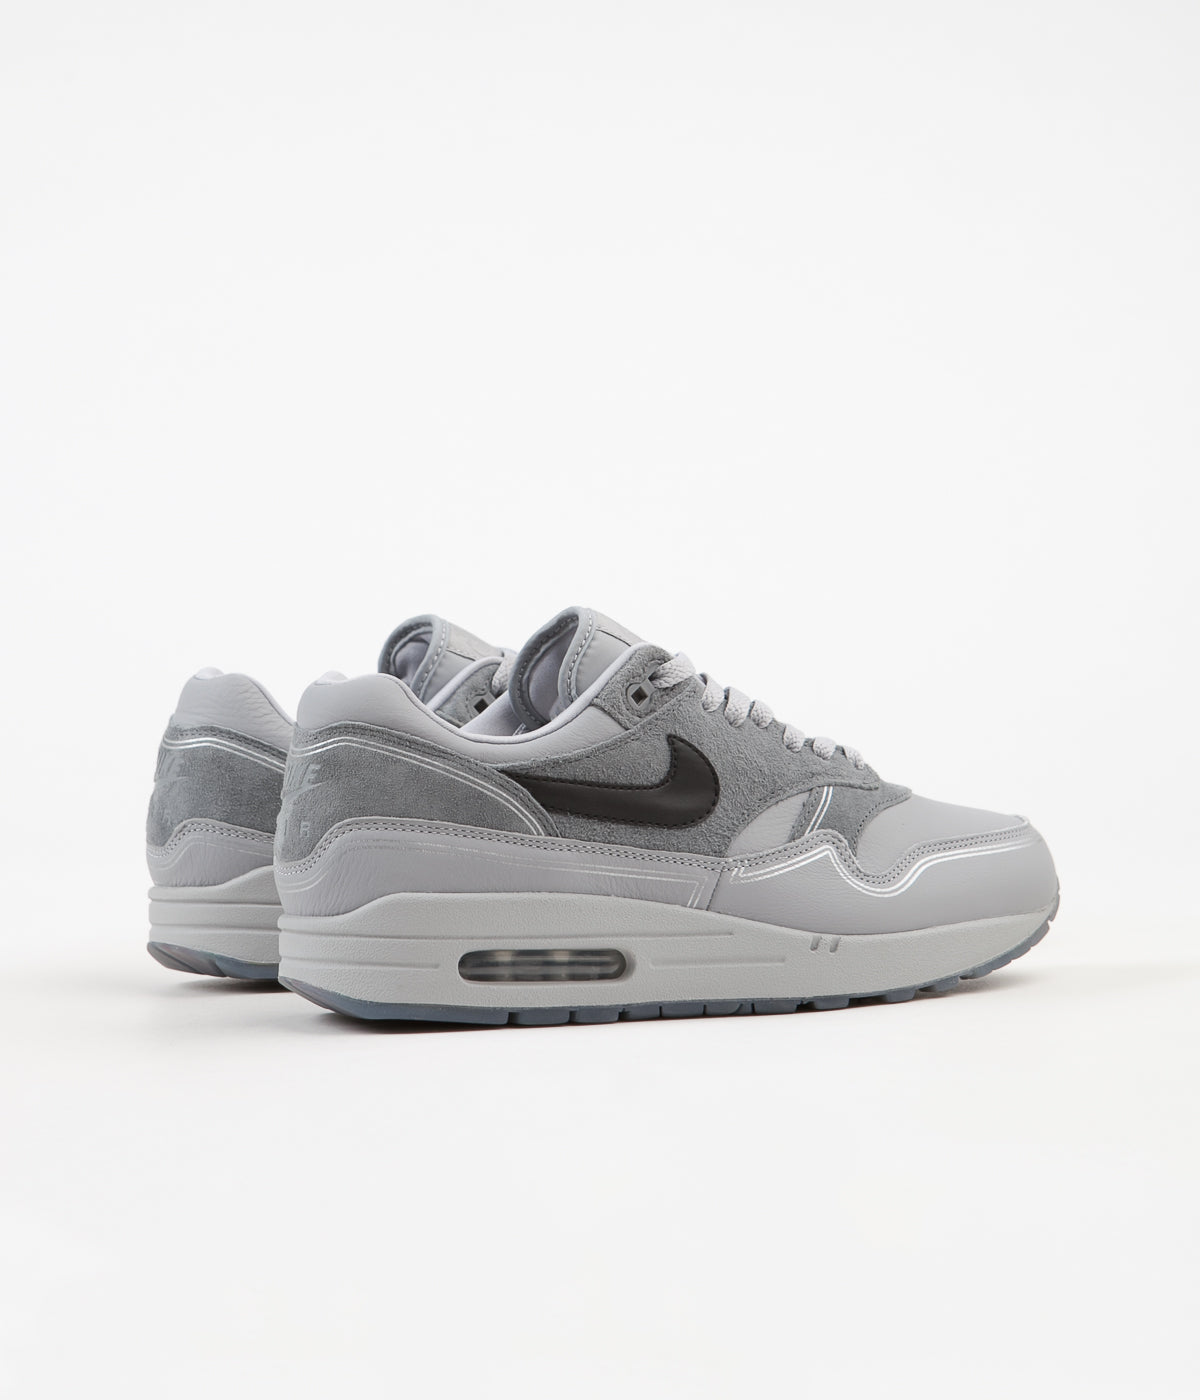 sports shoes 7321d b7a0e ... Nike Air Max 1 Centre Pompidou Shoes - Wolf Grey   Black - Cool Grey ...